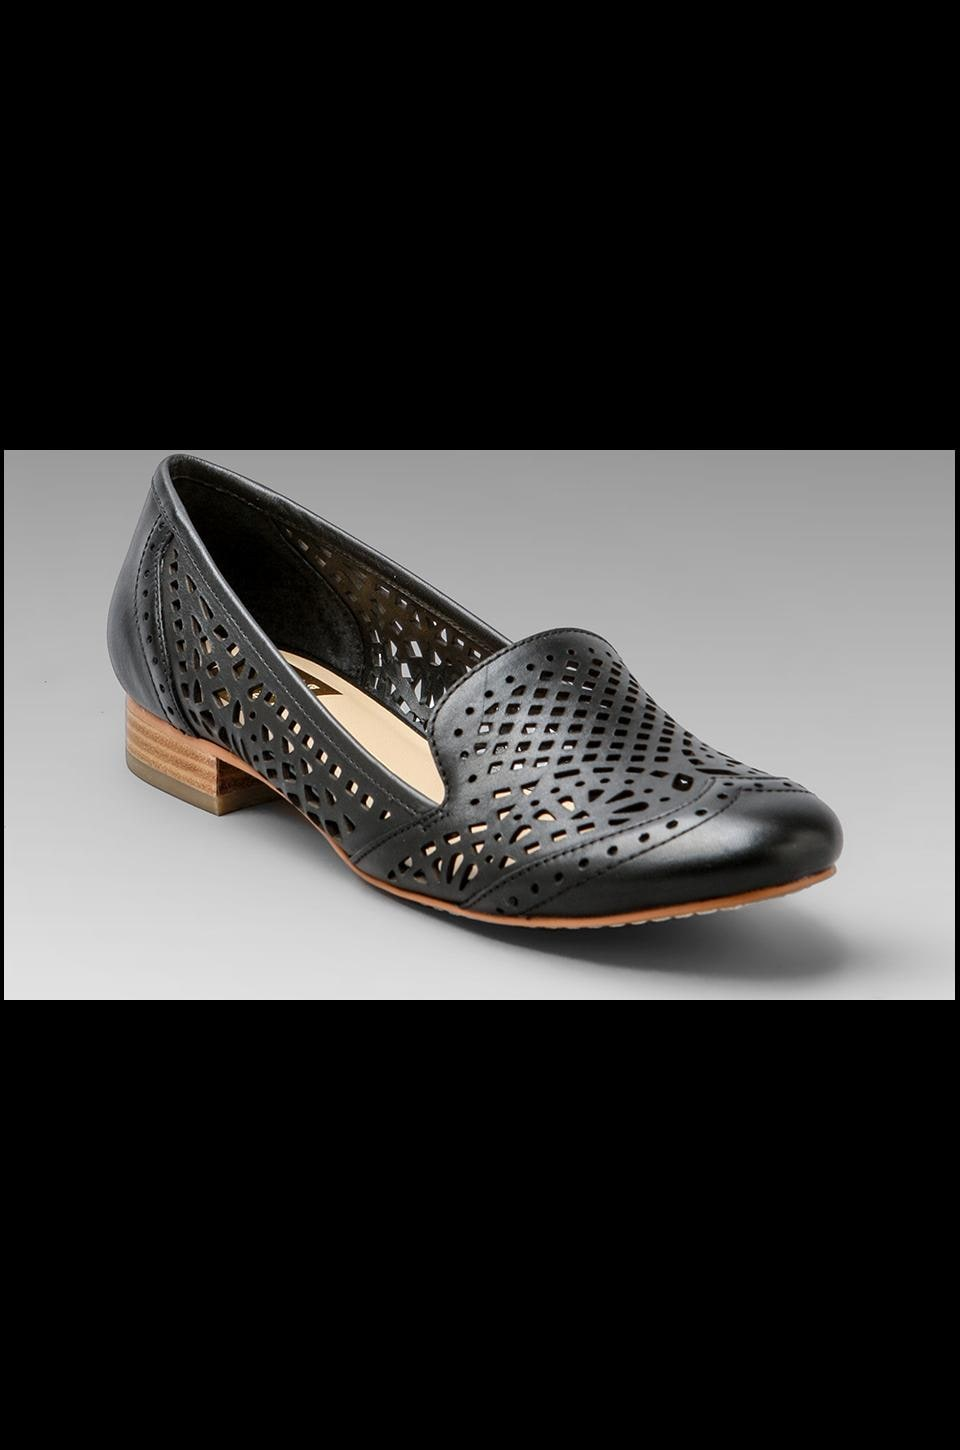 Dolce Vita Ipis Loafer in Black